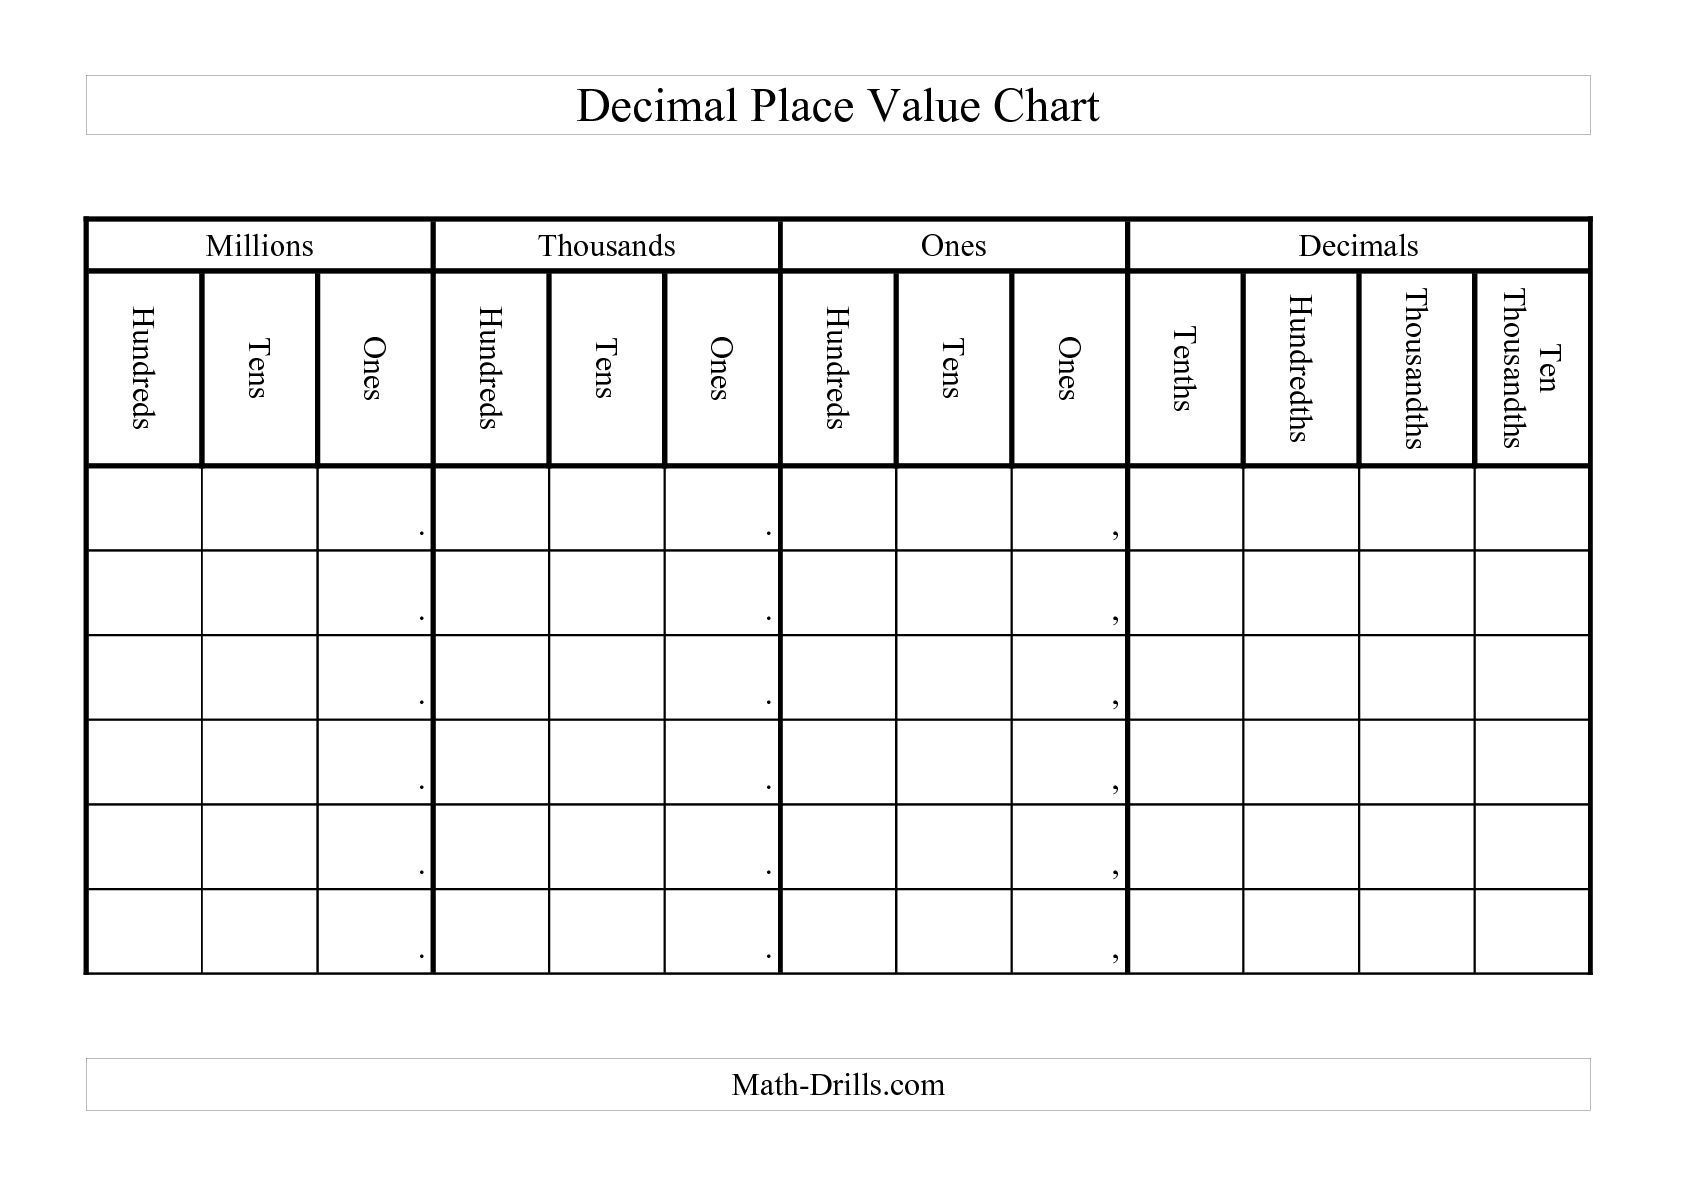 Pv Chart To Billions Decimal Equivalent Fractions Multiplying Fractions Dividing Fractions Long Divisi In 2020 Place Value With Decimals Place Value Chart Place Values Place value to billions worksheets